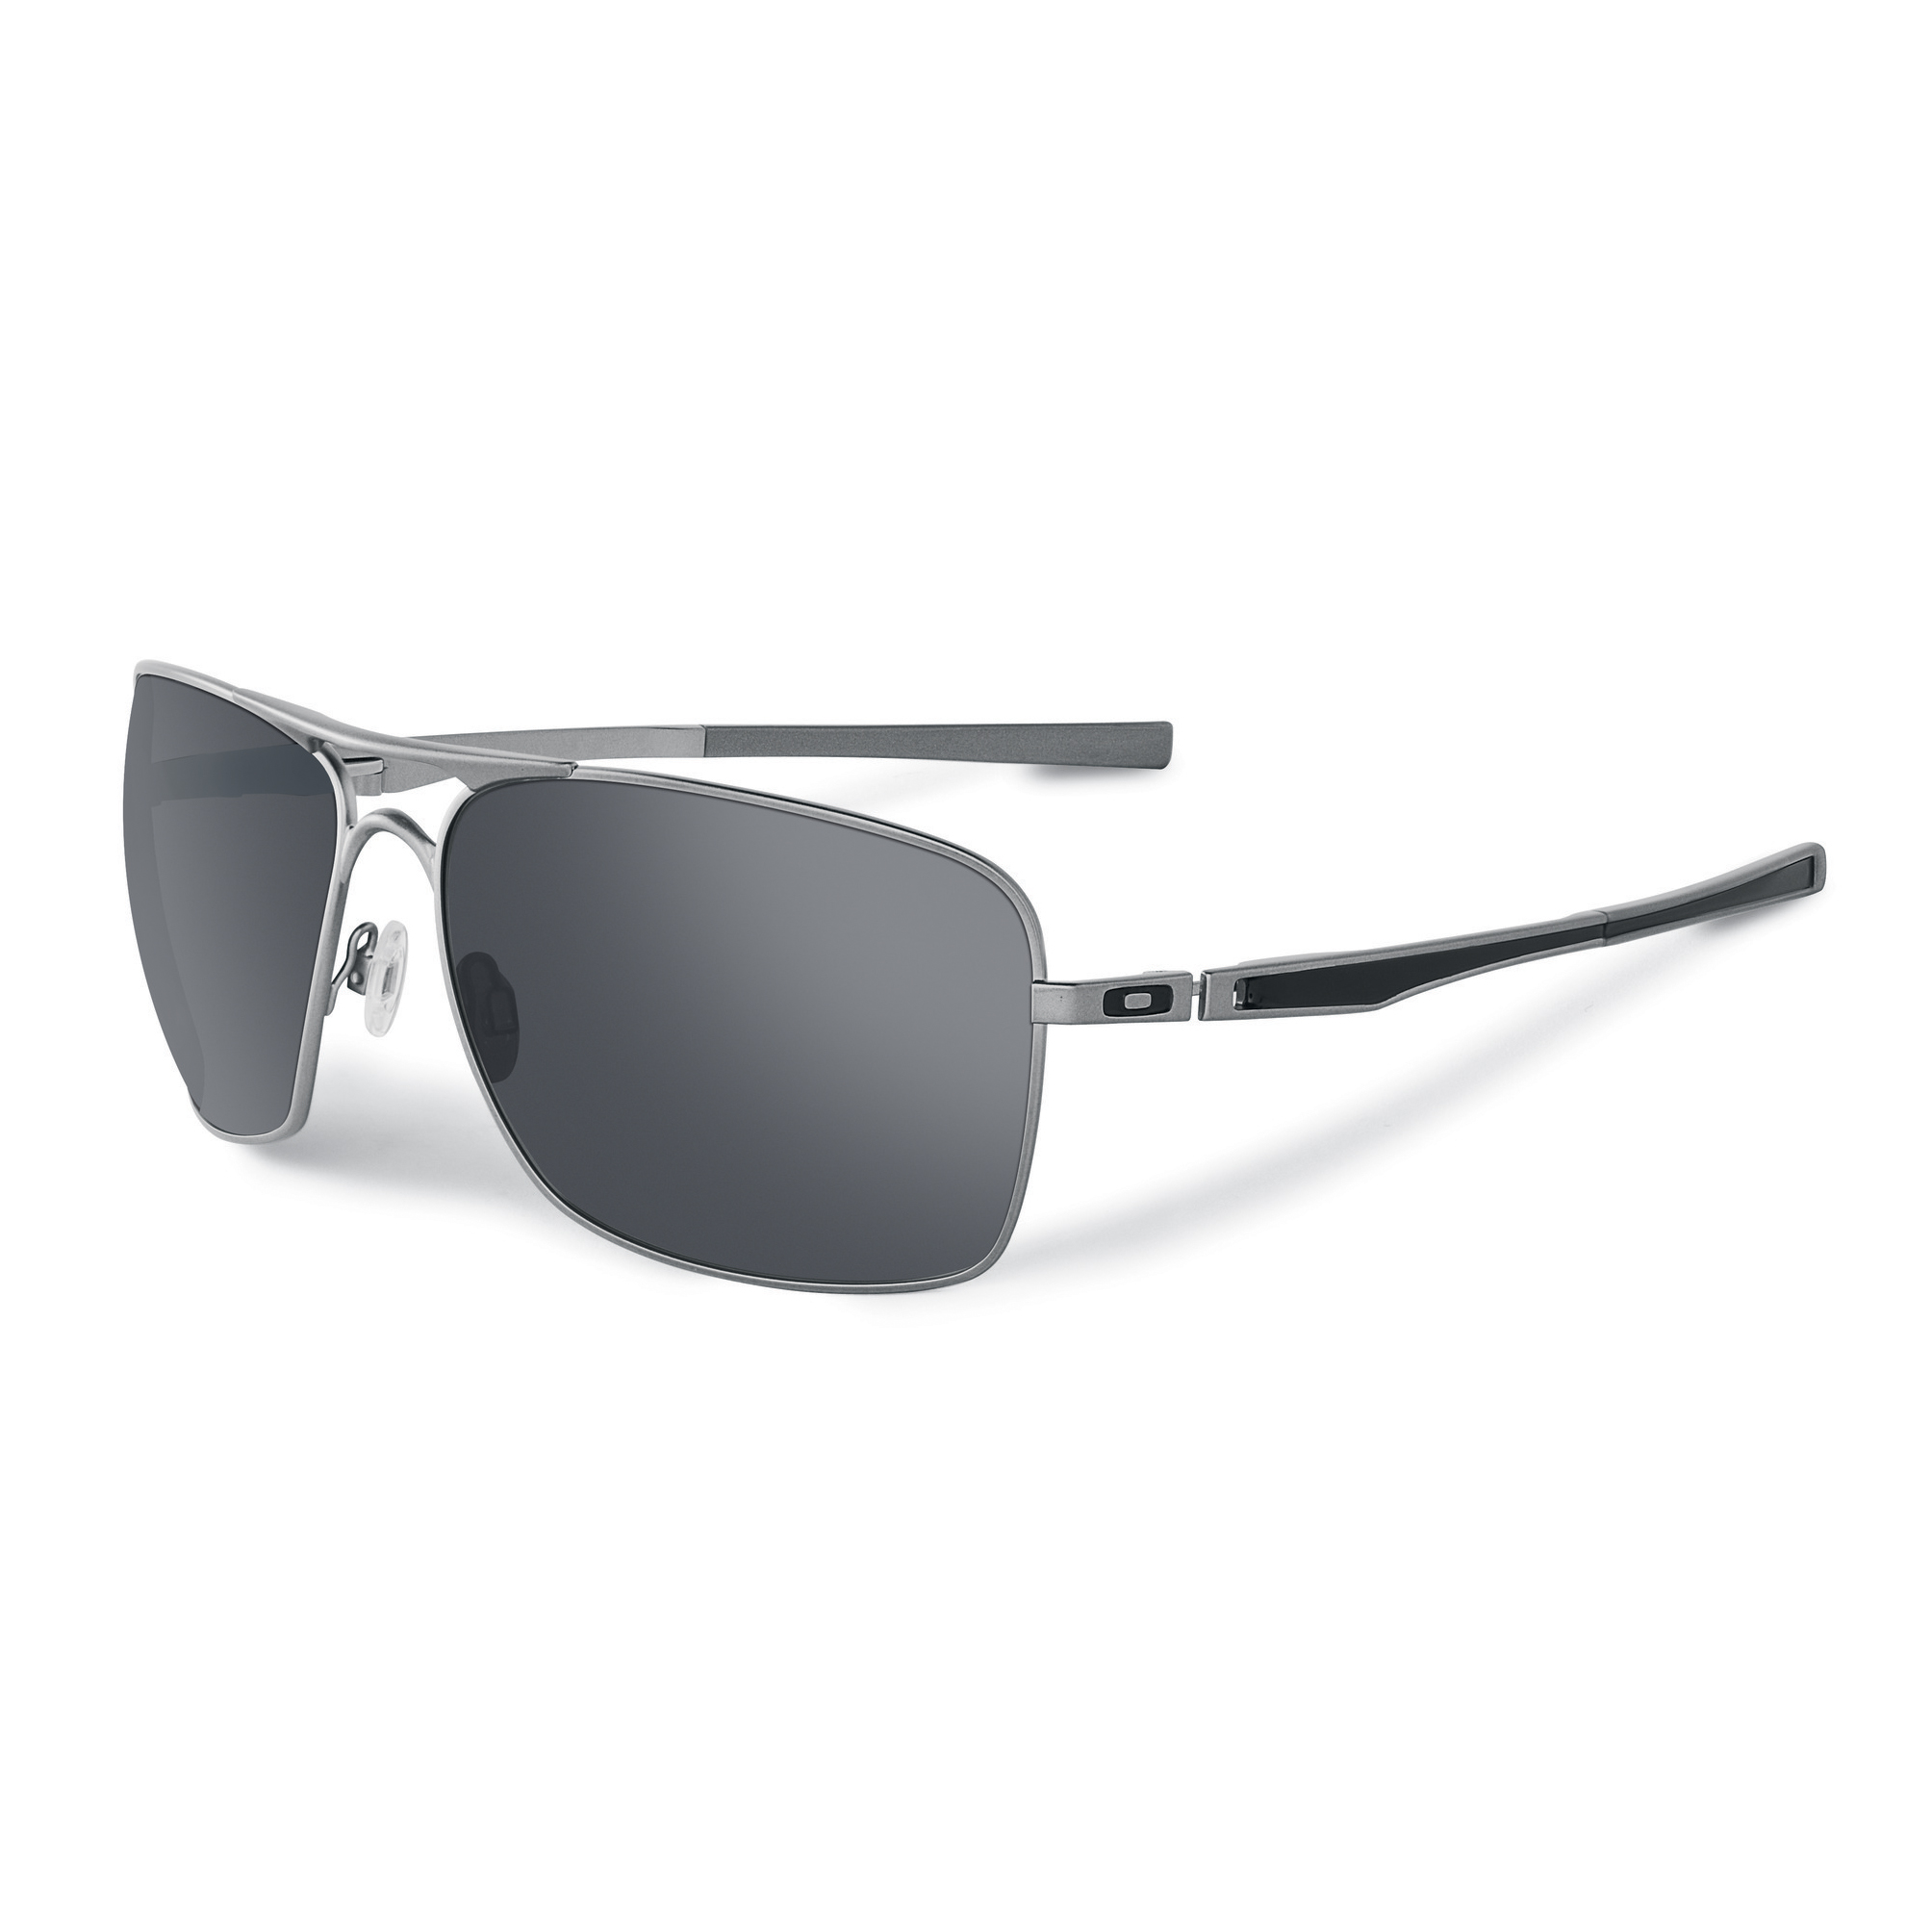 Oakley Plaintiff Squared Sunglasses Grey